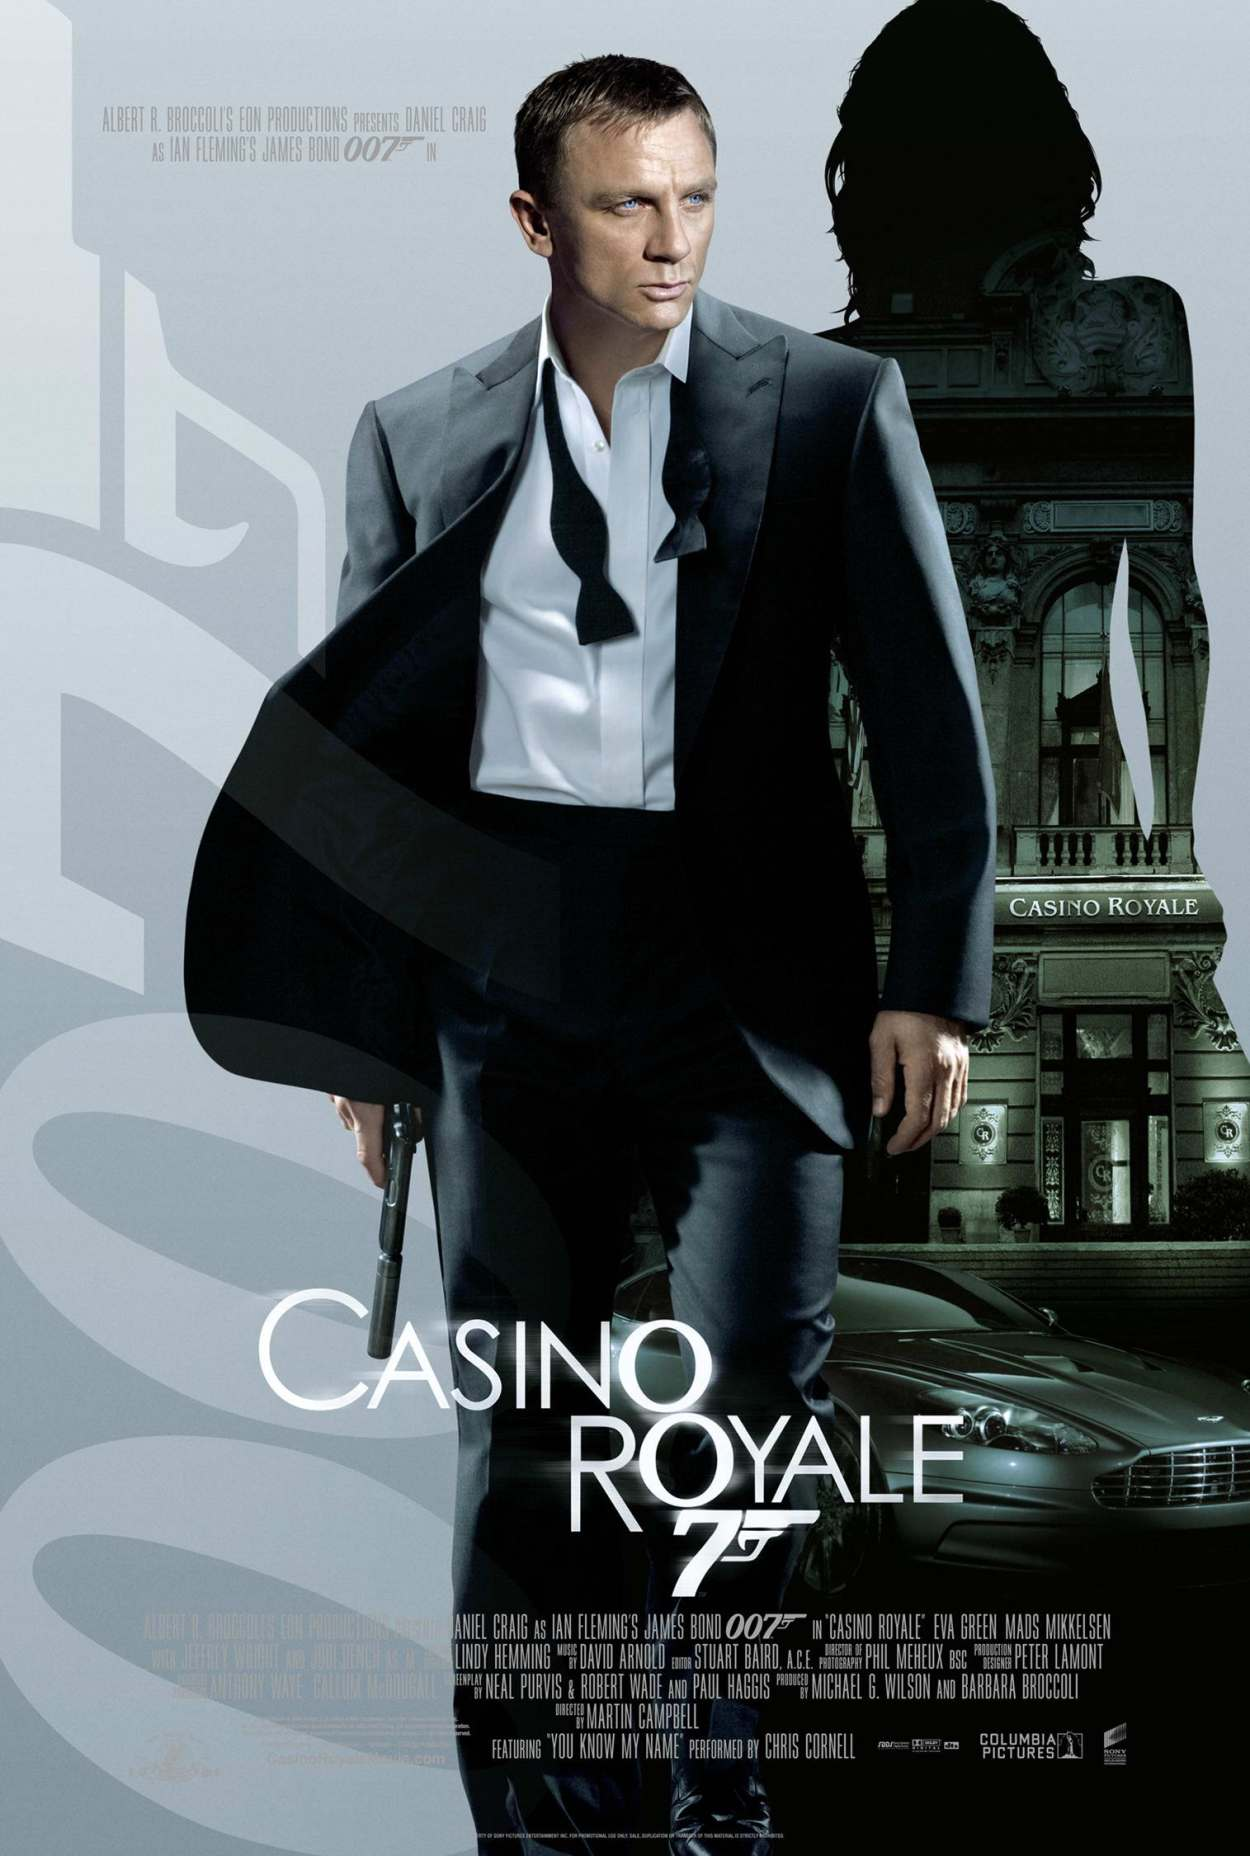 Casio Royale (2006) movie poster